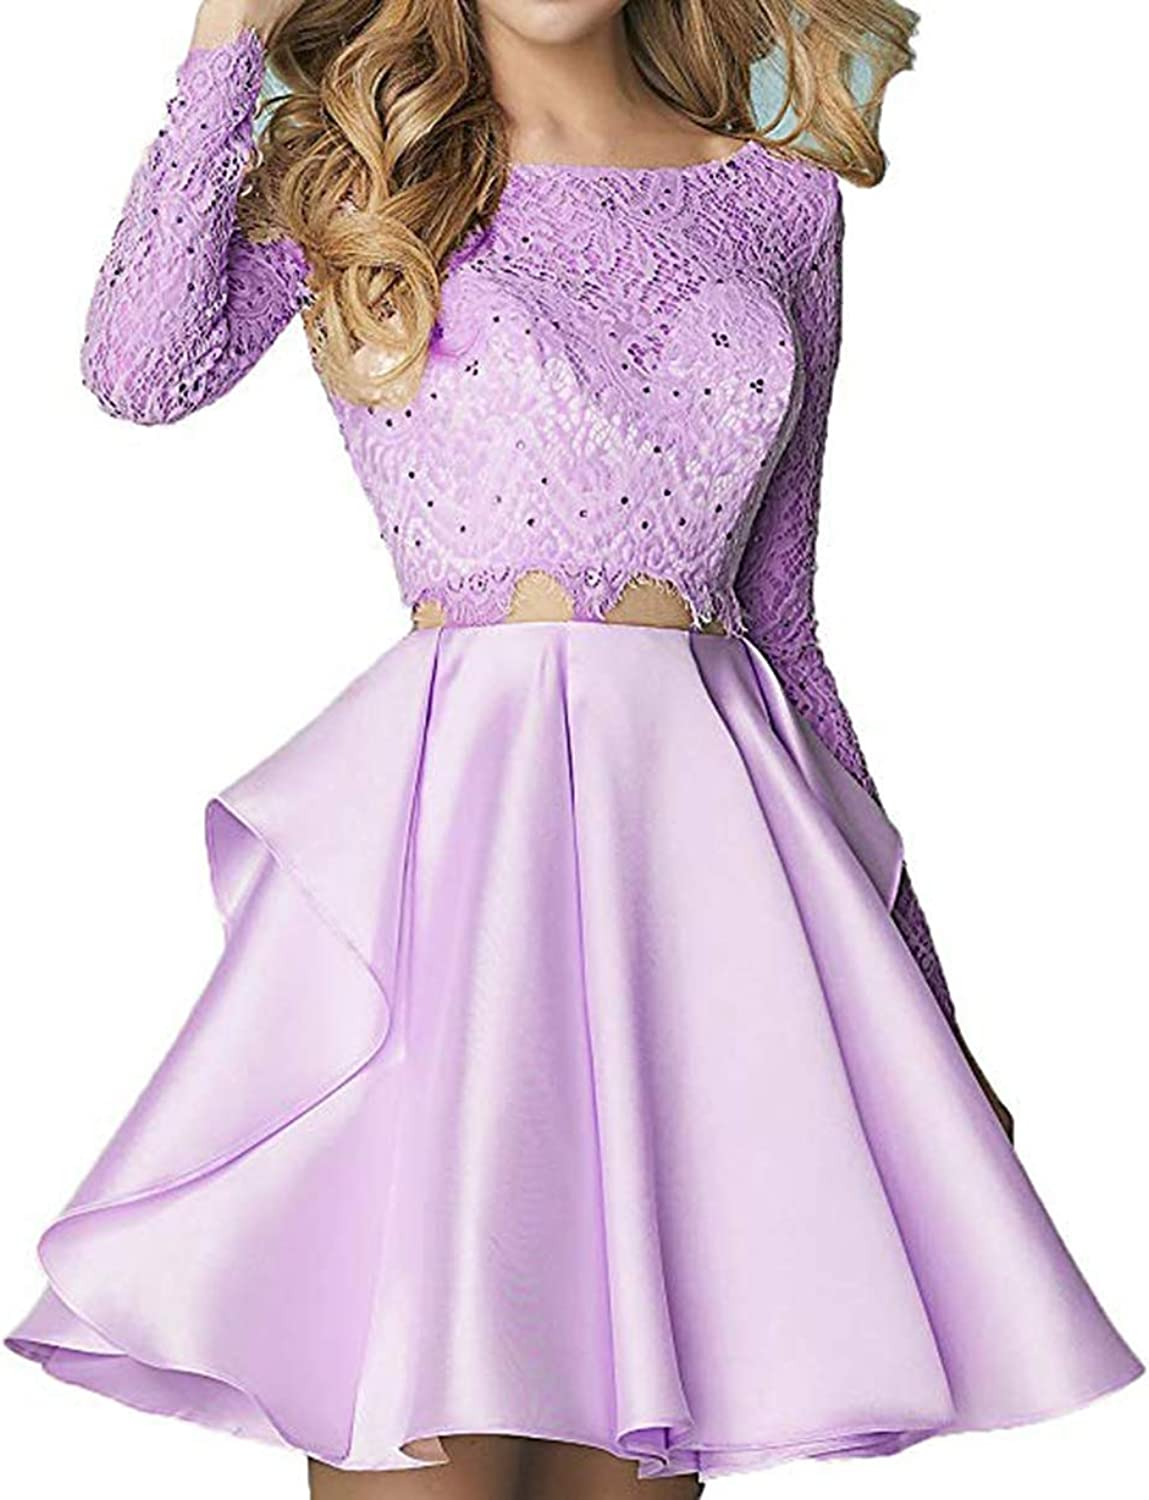 Ri Yun Two Piece Homecoming Dresses Short Long Sleeve Lace 2018 Beaded Prom Dresses Formal Evening Ball Gowns